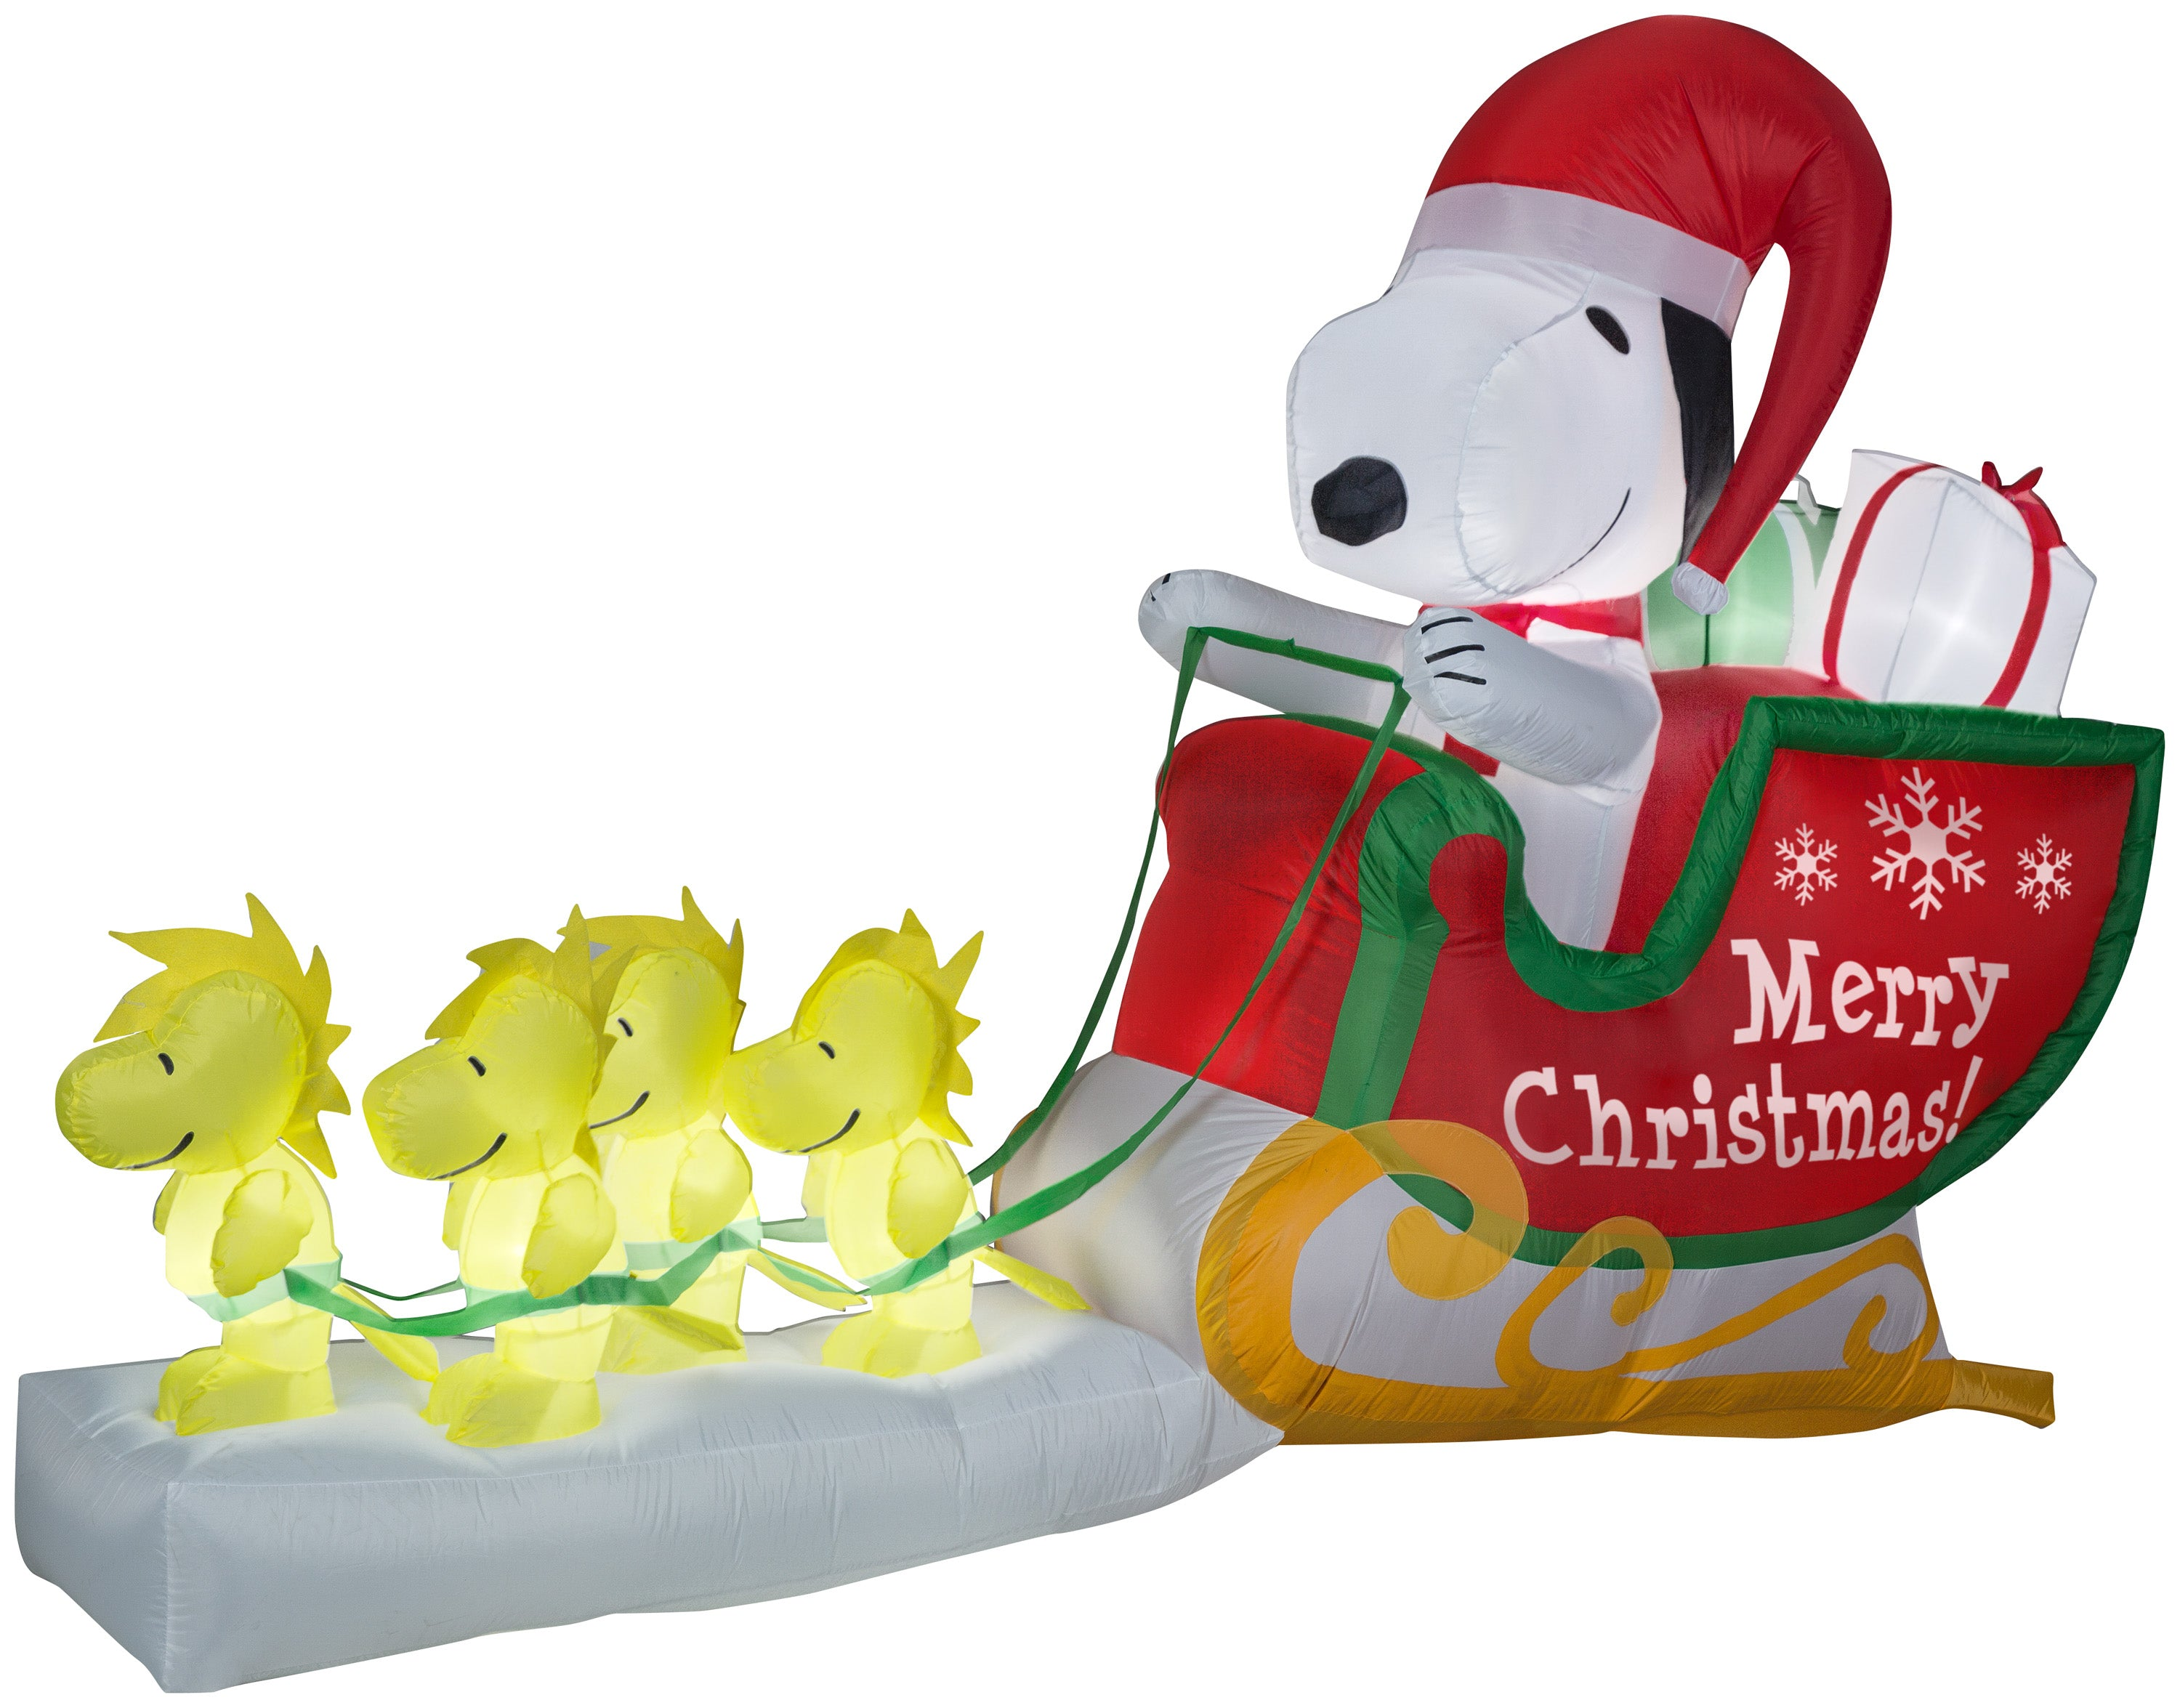 Gemmy 8' Airblown Inflatable Snoopy as Santa in Sleigh Scene